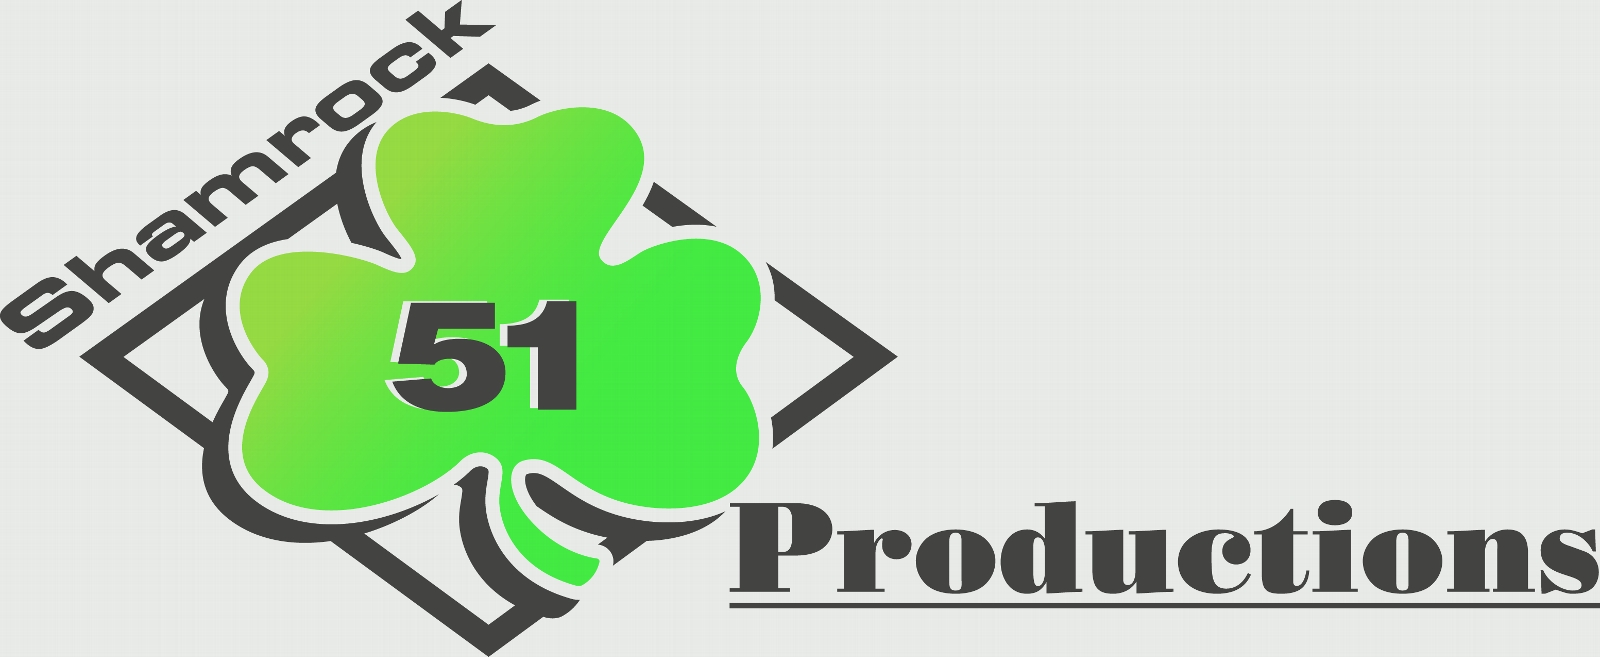 http://shamrock51productions.com/